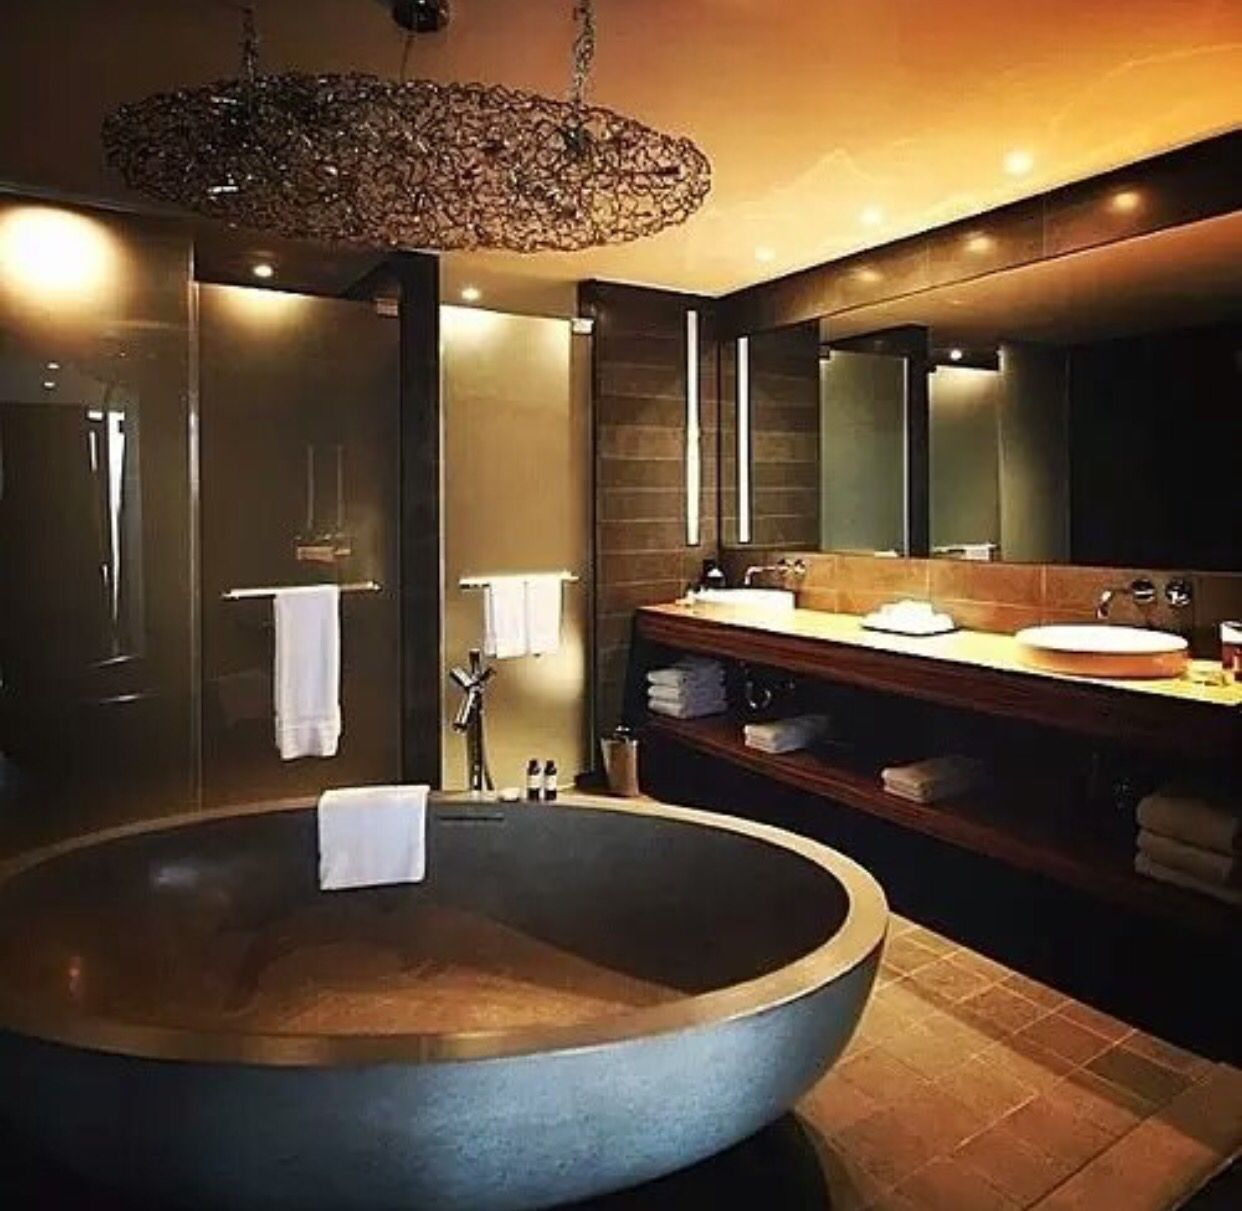 Love This Perfect For A Bachelor Pad Minimalist Bathroom Design Dream Bathrooms Minimalist Bathroom